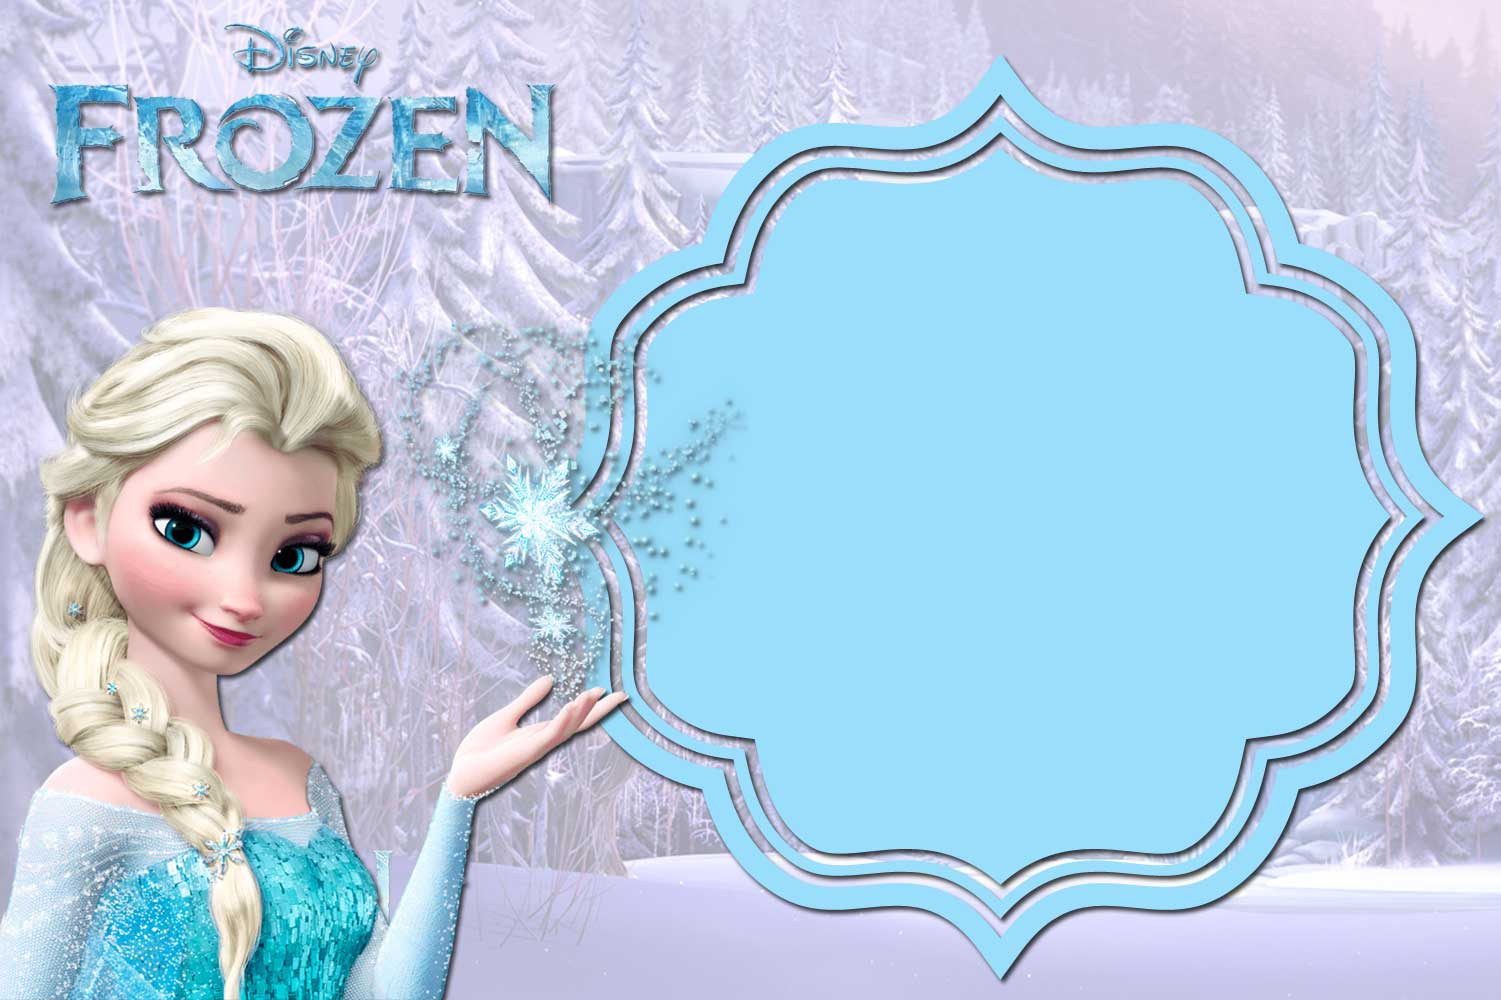 Free printable frozen anna and elsa invitation templates drevio when youre done simply go to your nearest print shop or you can print it by yourself this frozen invitation solutioingenieria Image collections